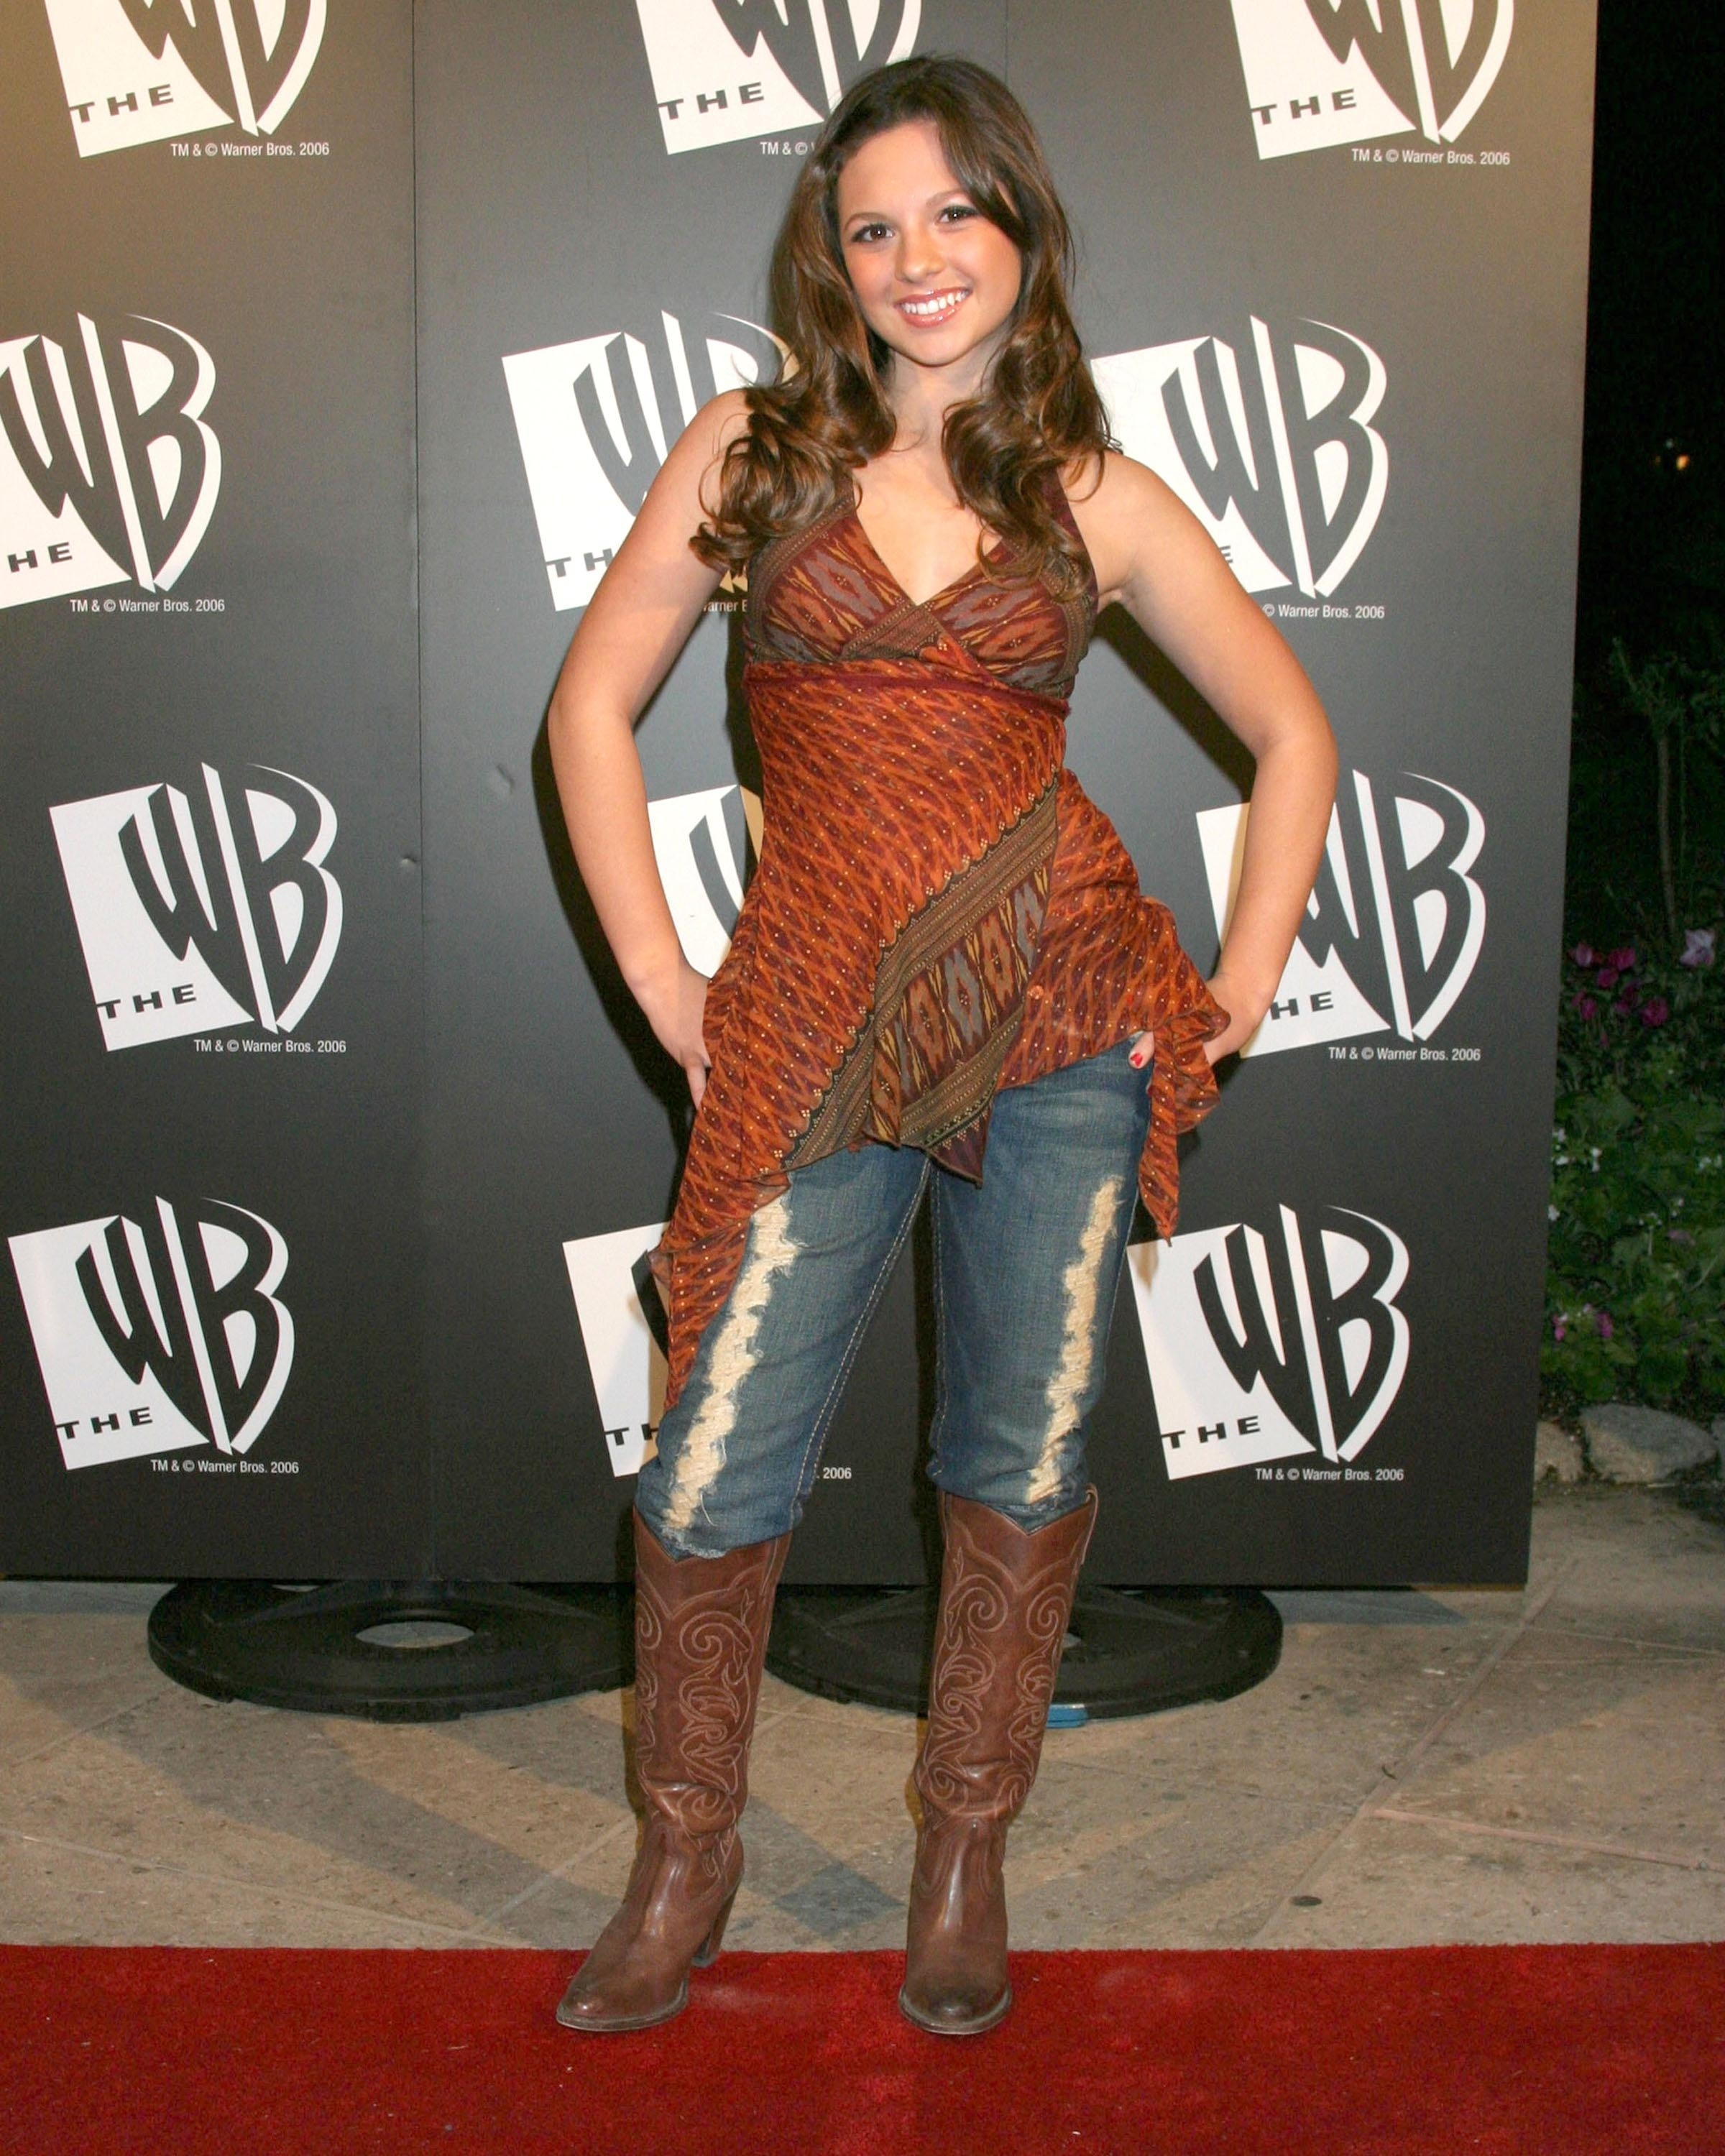 Photos de Mackenzie Rosman - The WB Networks 2006 All Star Party - 14